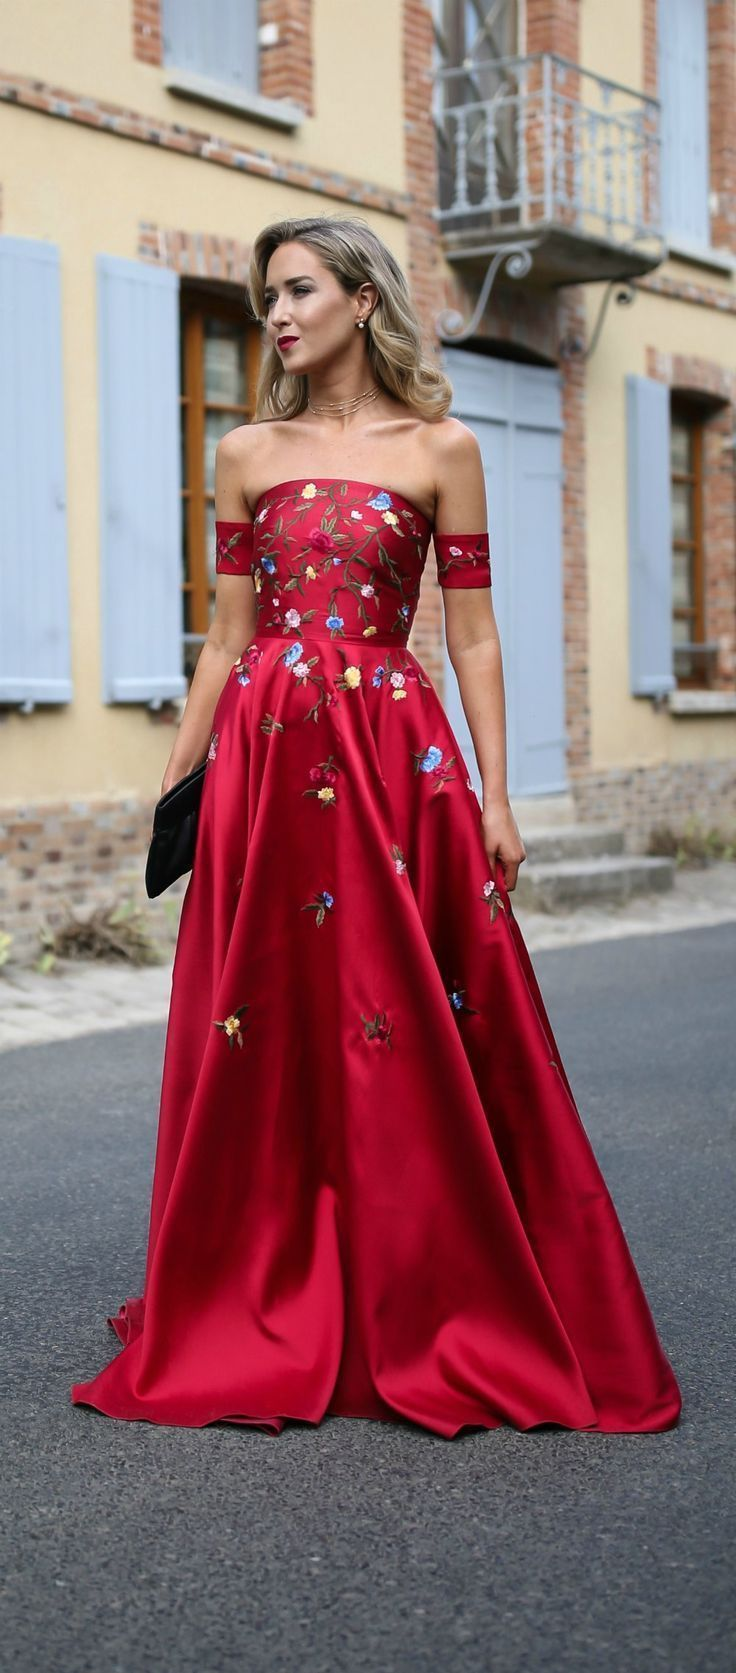 Red embroidered floral gown, gold choker necklace {